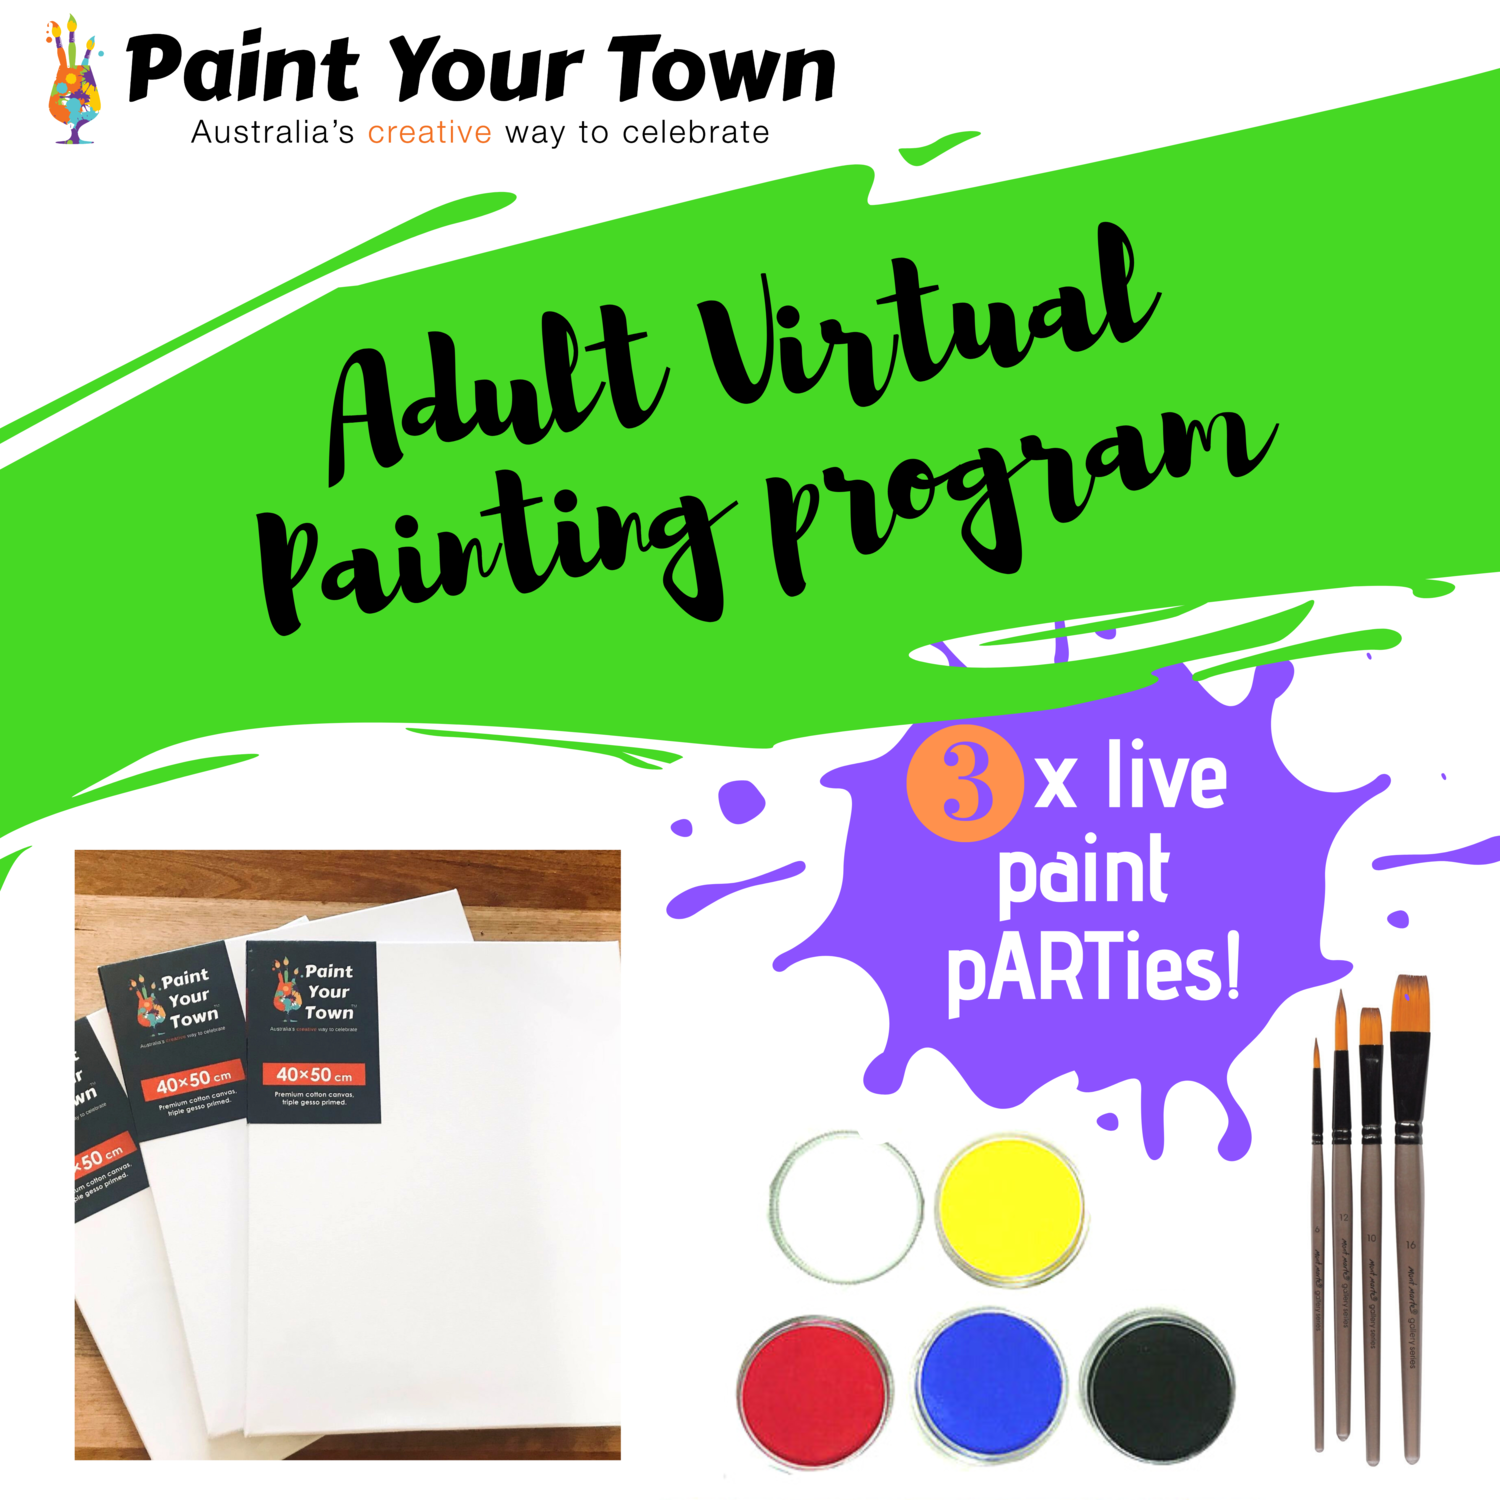 Adult Virtual Painting Program - 3 live paint pARTies! + materials